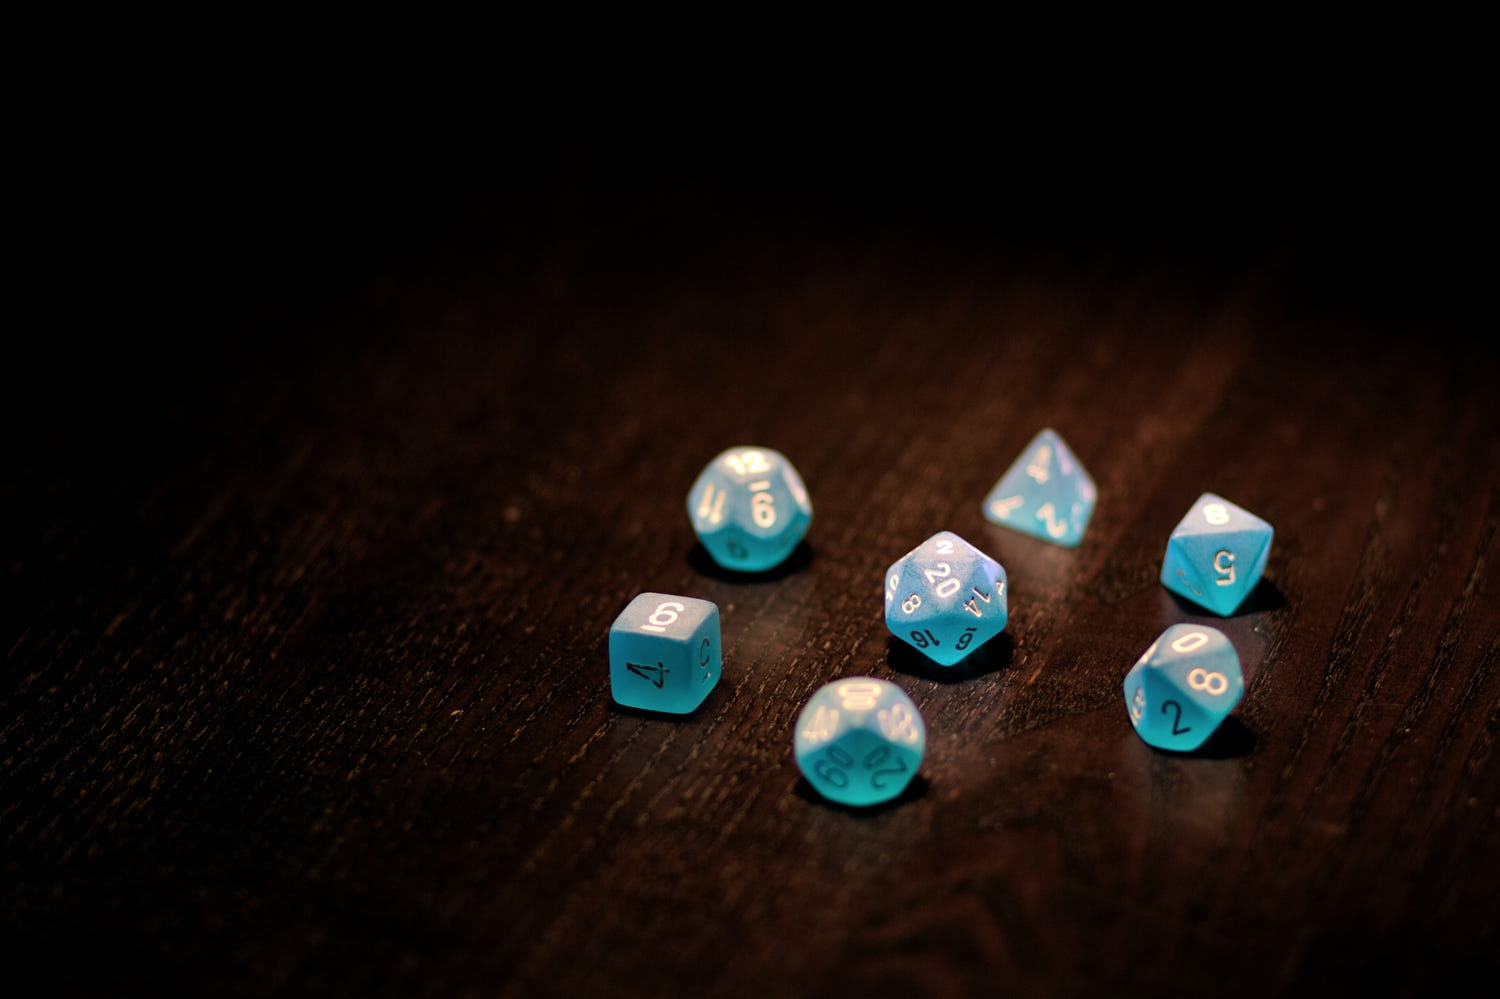 The types of genasi are based on a different element that identifies with it